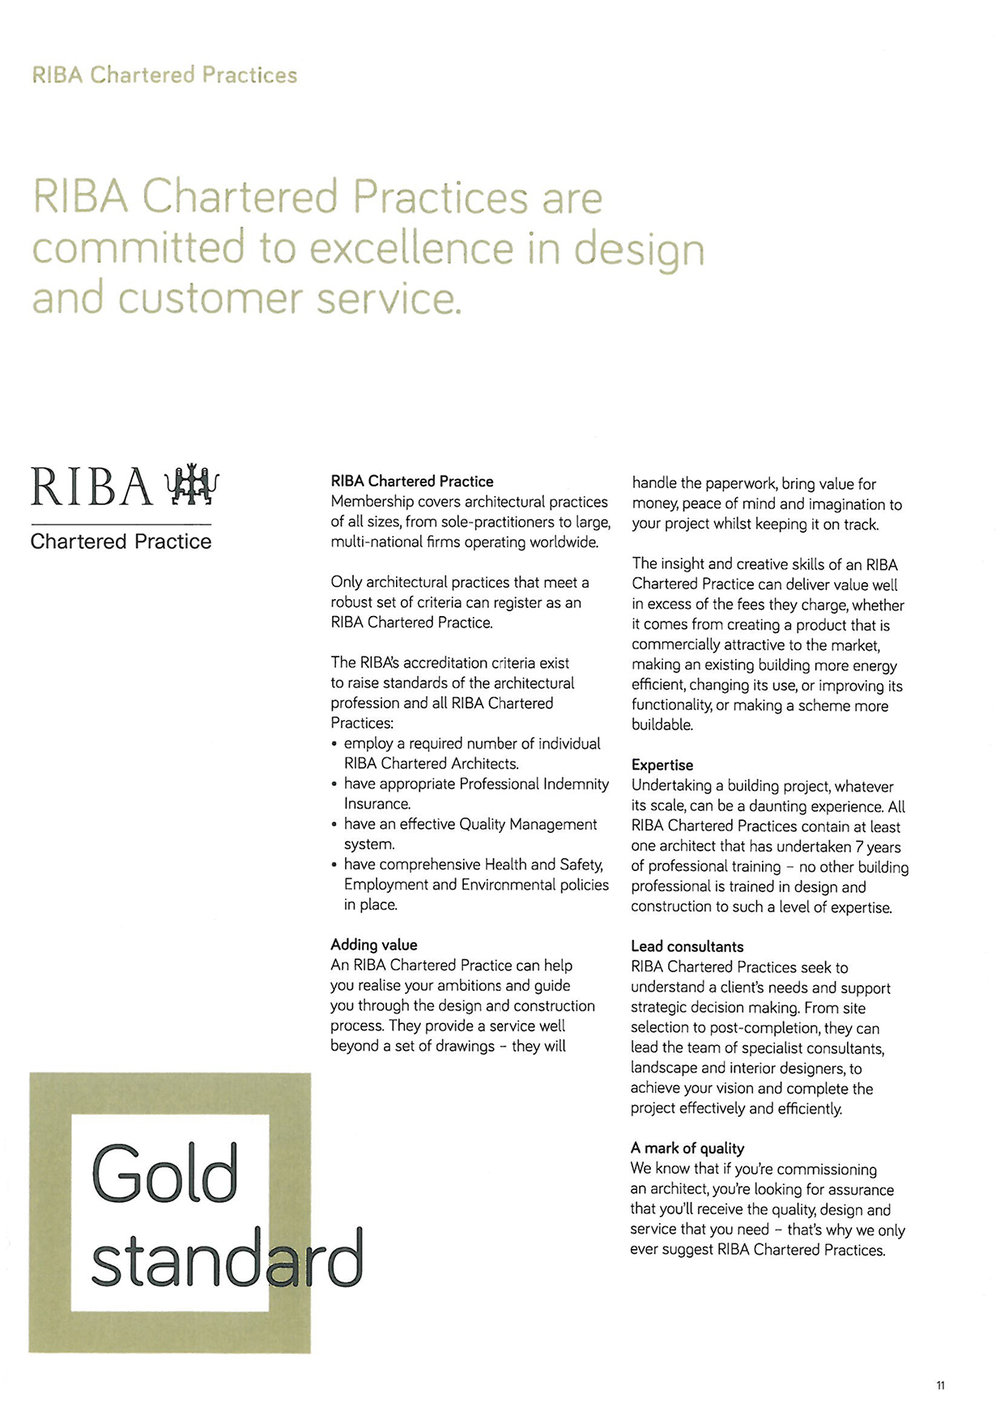 RIBA Chartered Practices_1-1.jpg